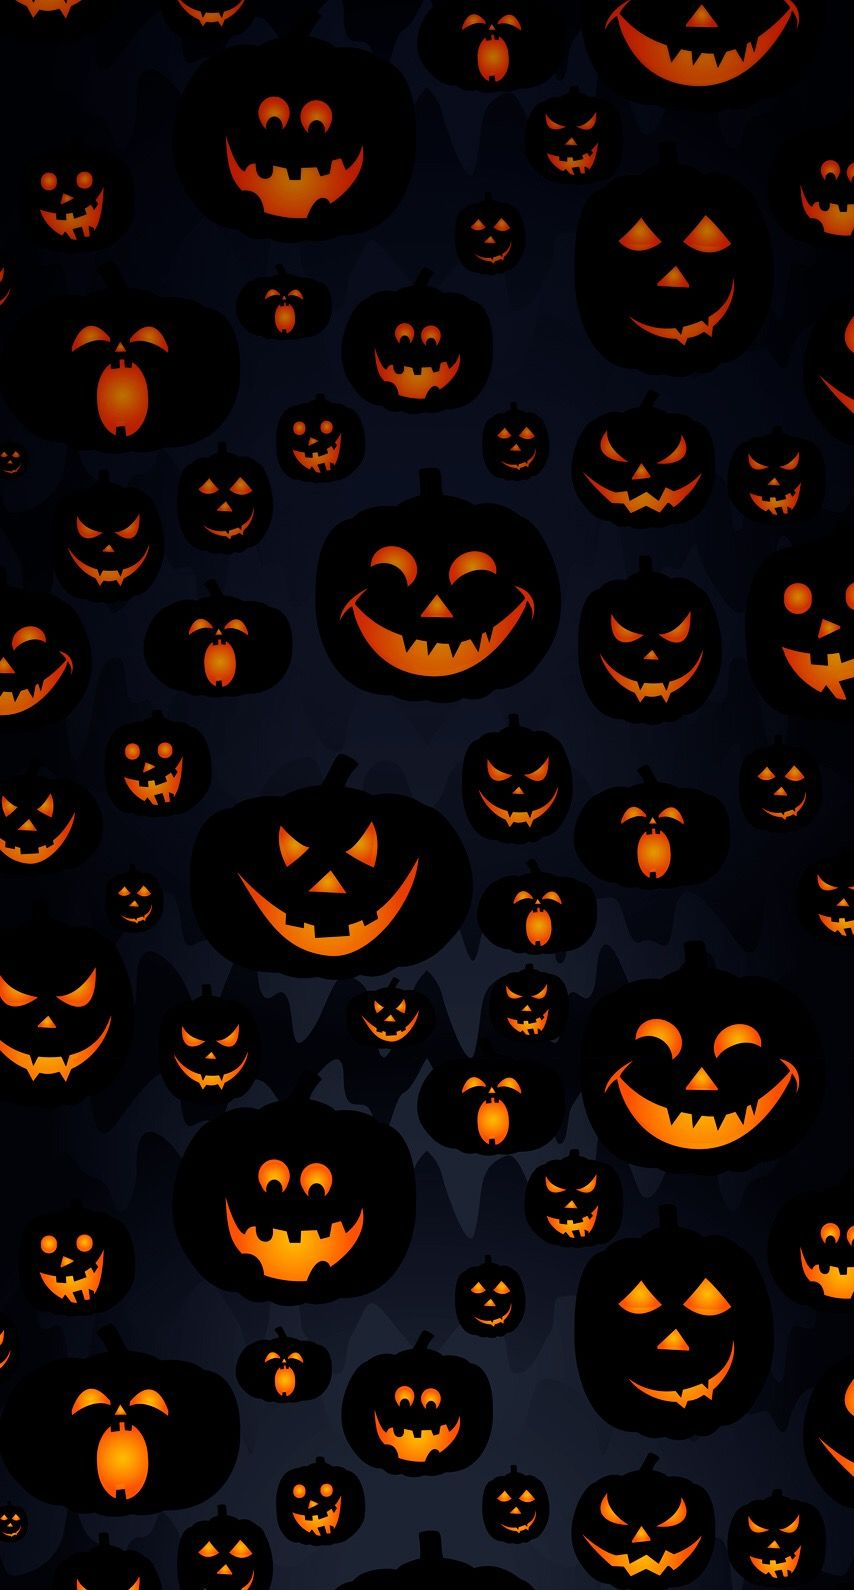 Iphone Wall Halloween Tjn Halloween Wallpaper Iphone Halloween Wallpaper Pumpkin Wallpaper